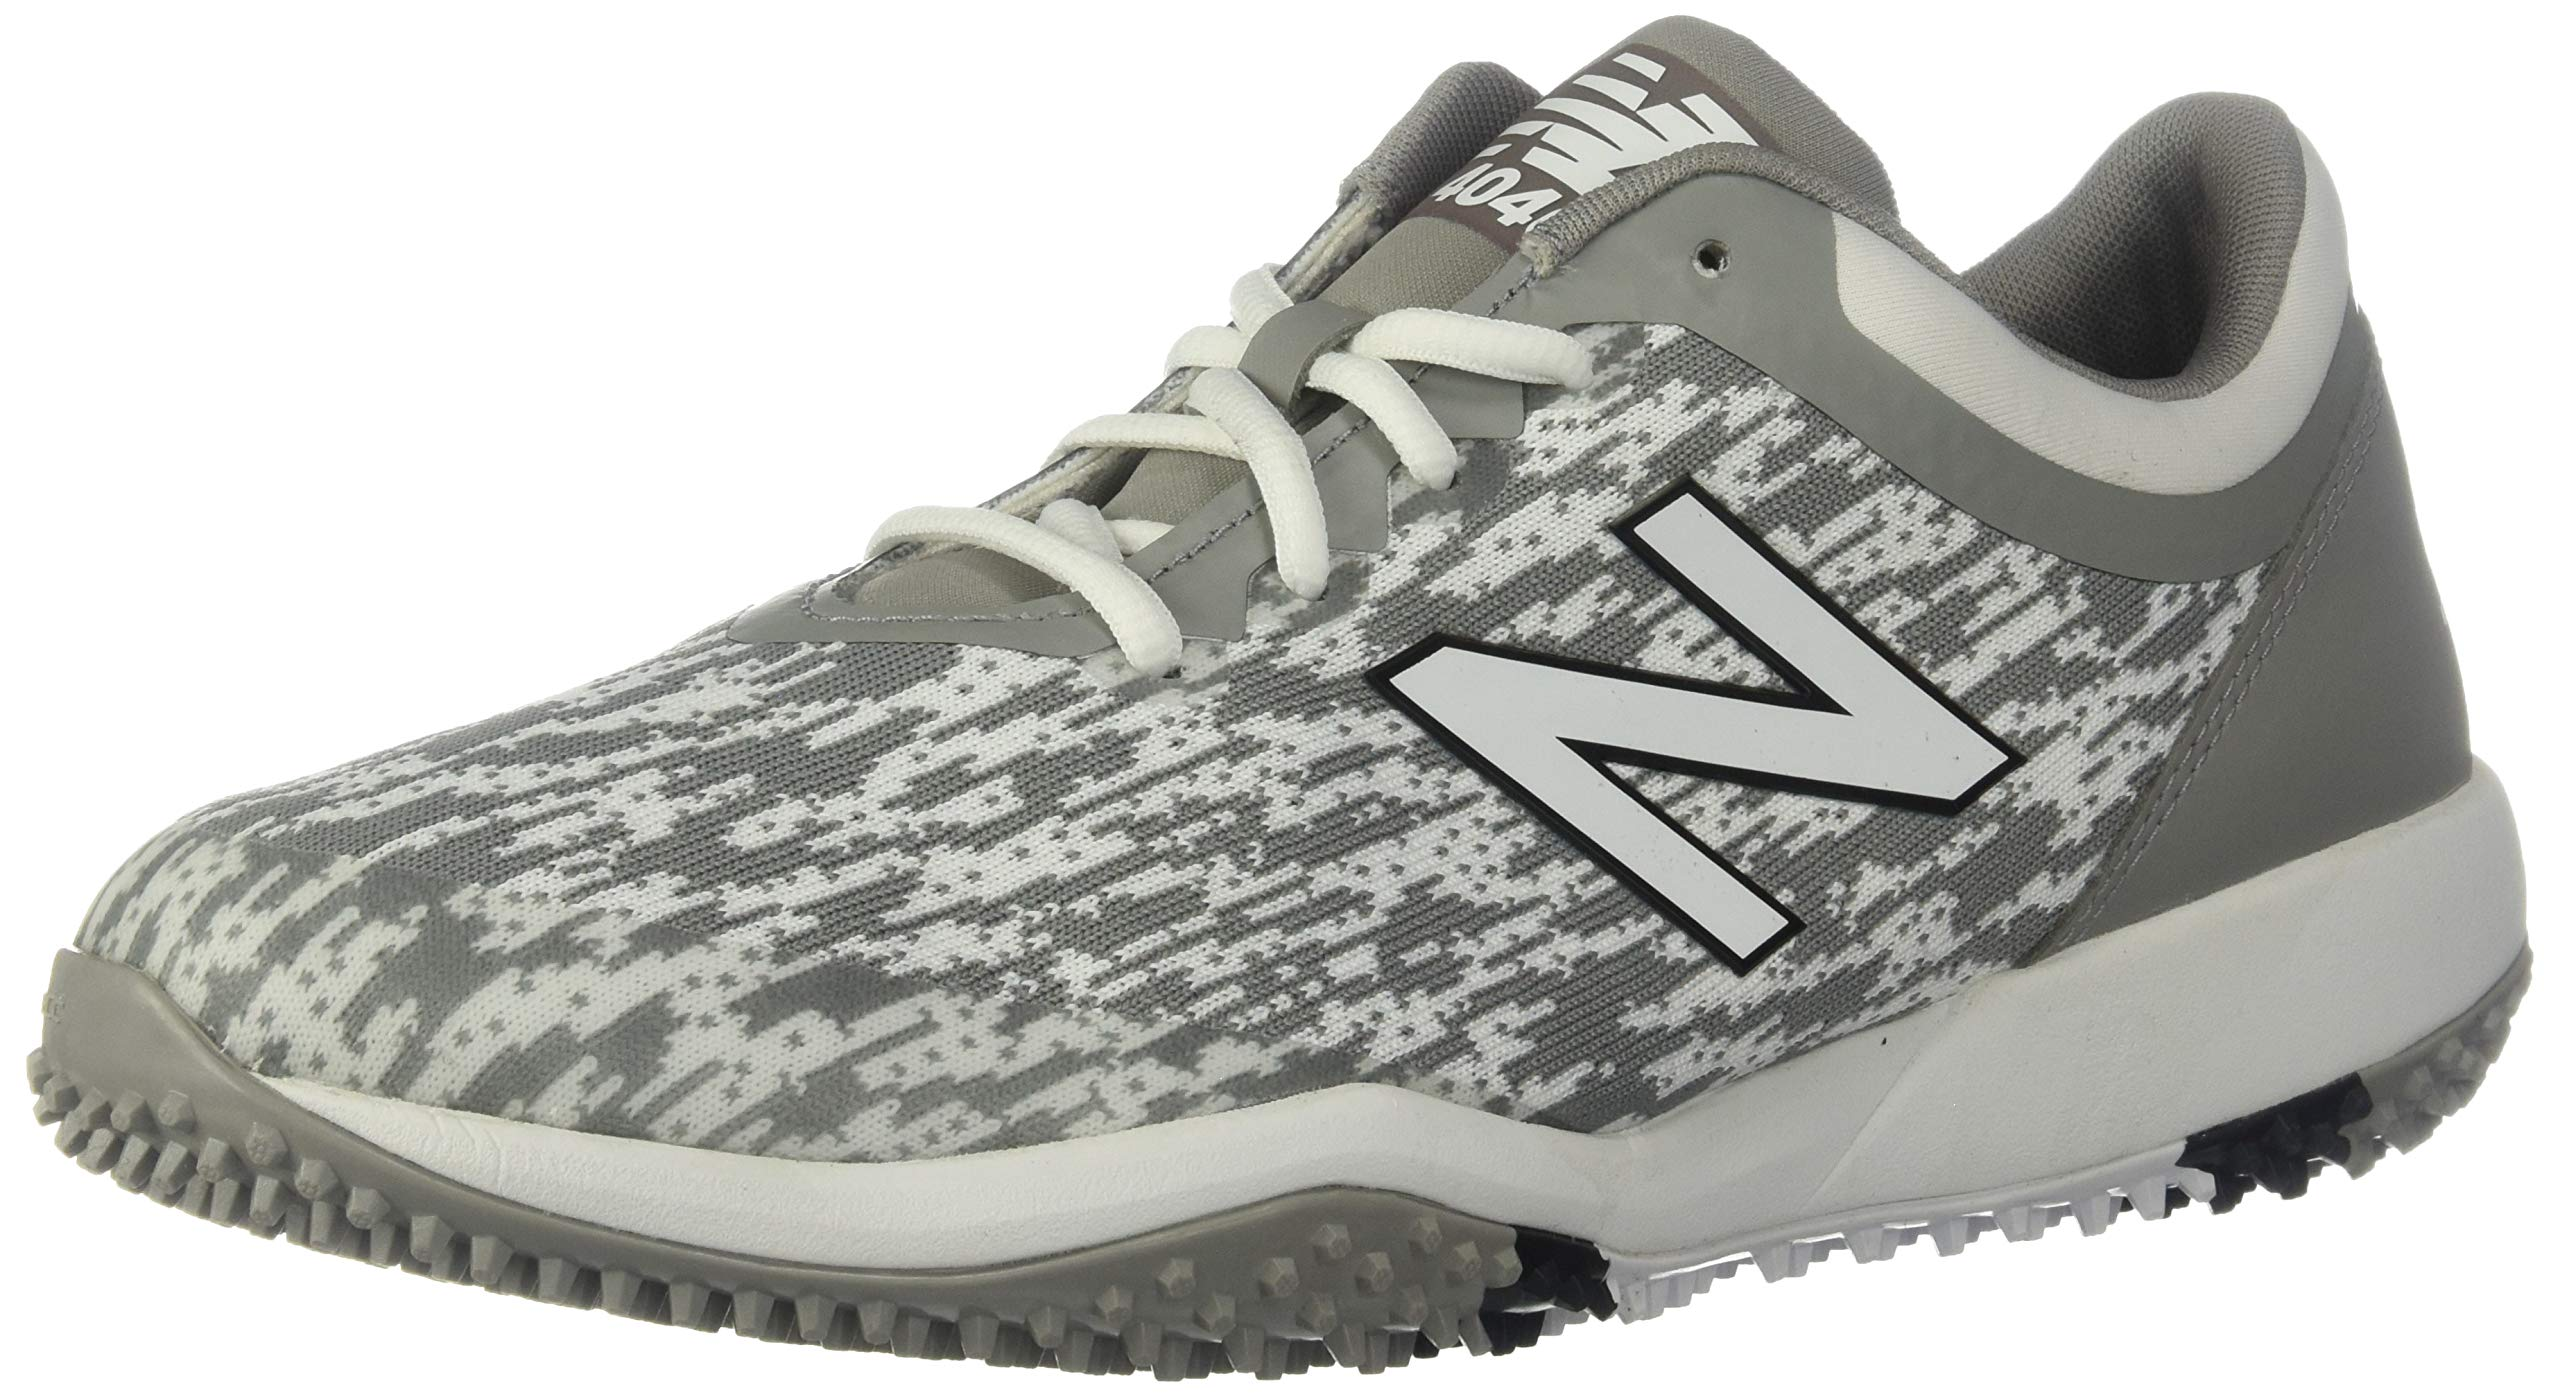 New Balance Men's 4040v5 Turf Running Shoe, Grey/White, 11 D US by New Balance